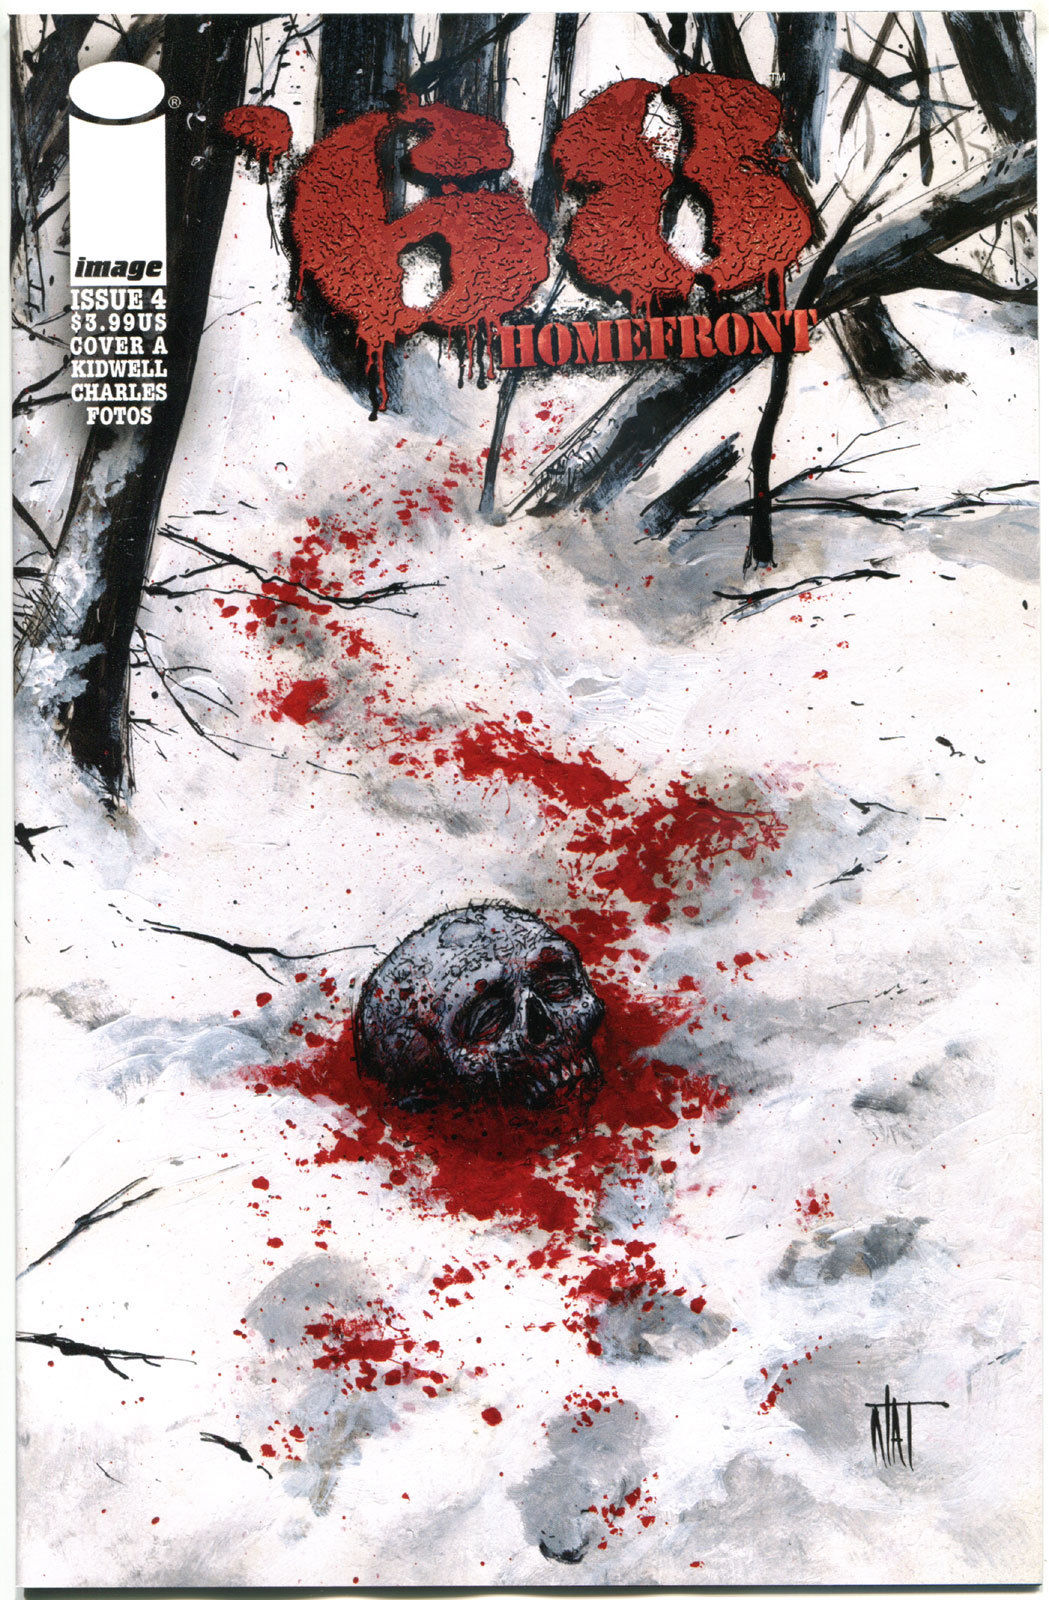 '68 HOMEFRONT #4 A, NM,1st Print, Zombie, Walking Dead,2014,more Horror in store